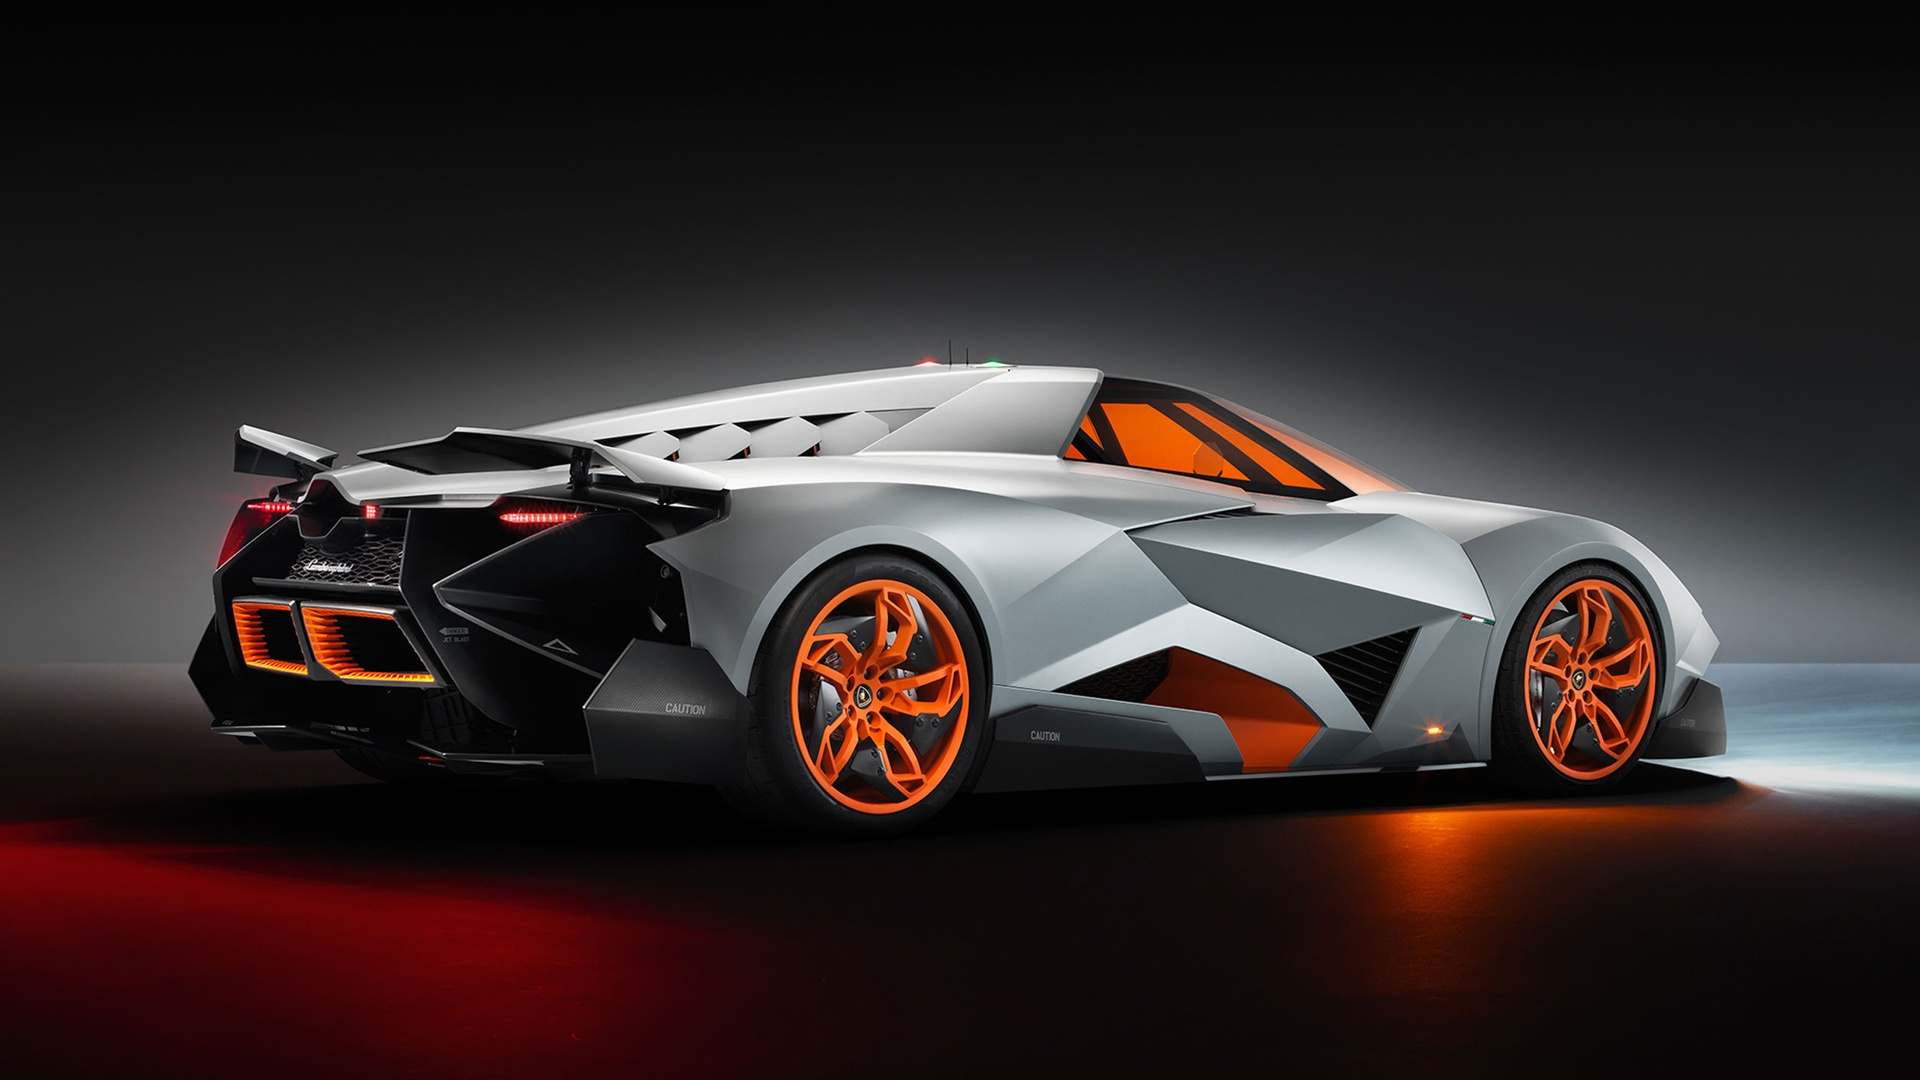 This lamborghini wallpaper 2014 was added to wallpaperskyline.com at . This high definition desktop background is a jpg image with a ratio of 4:3.